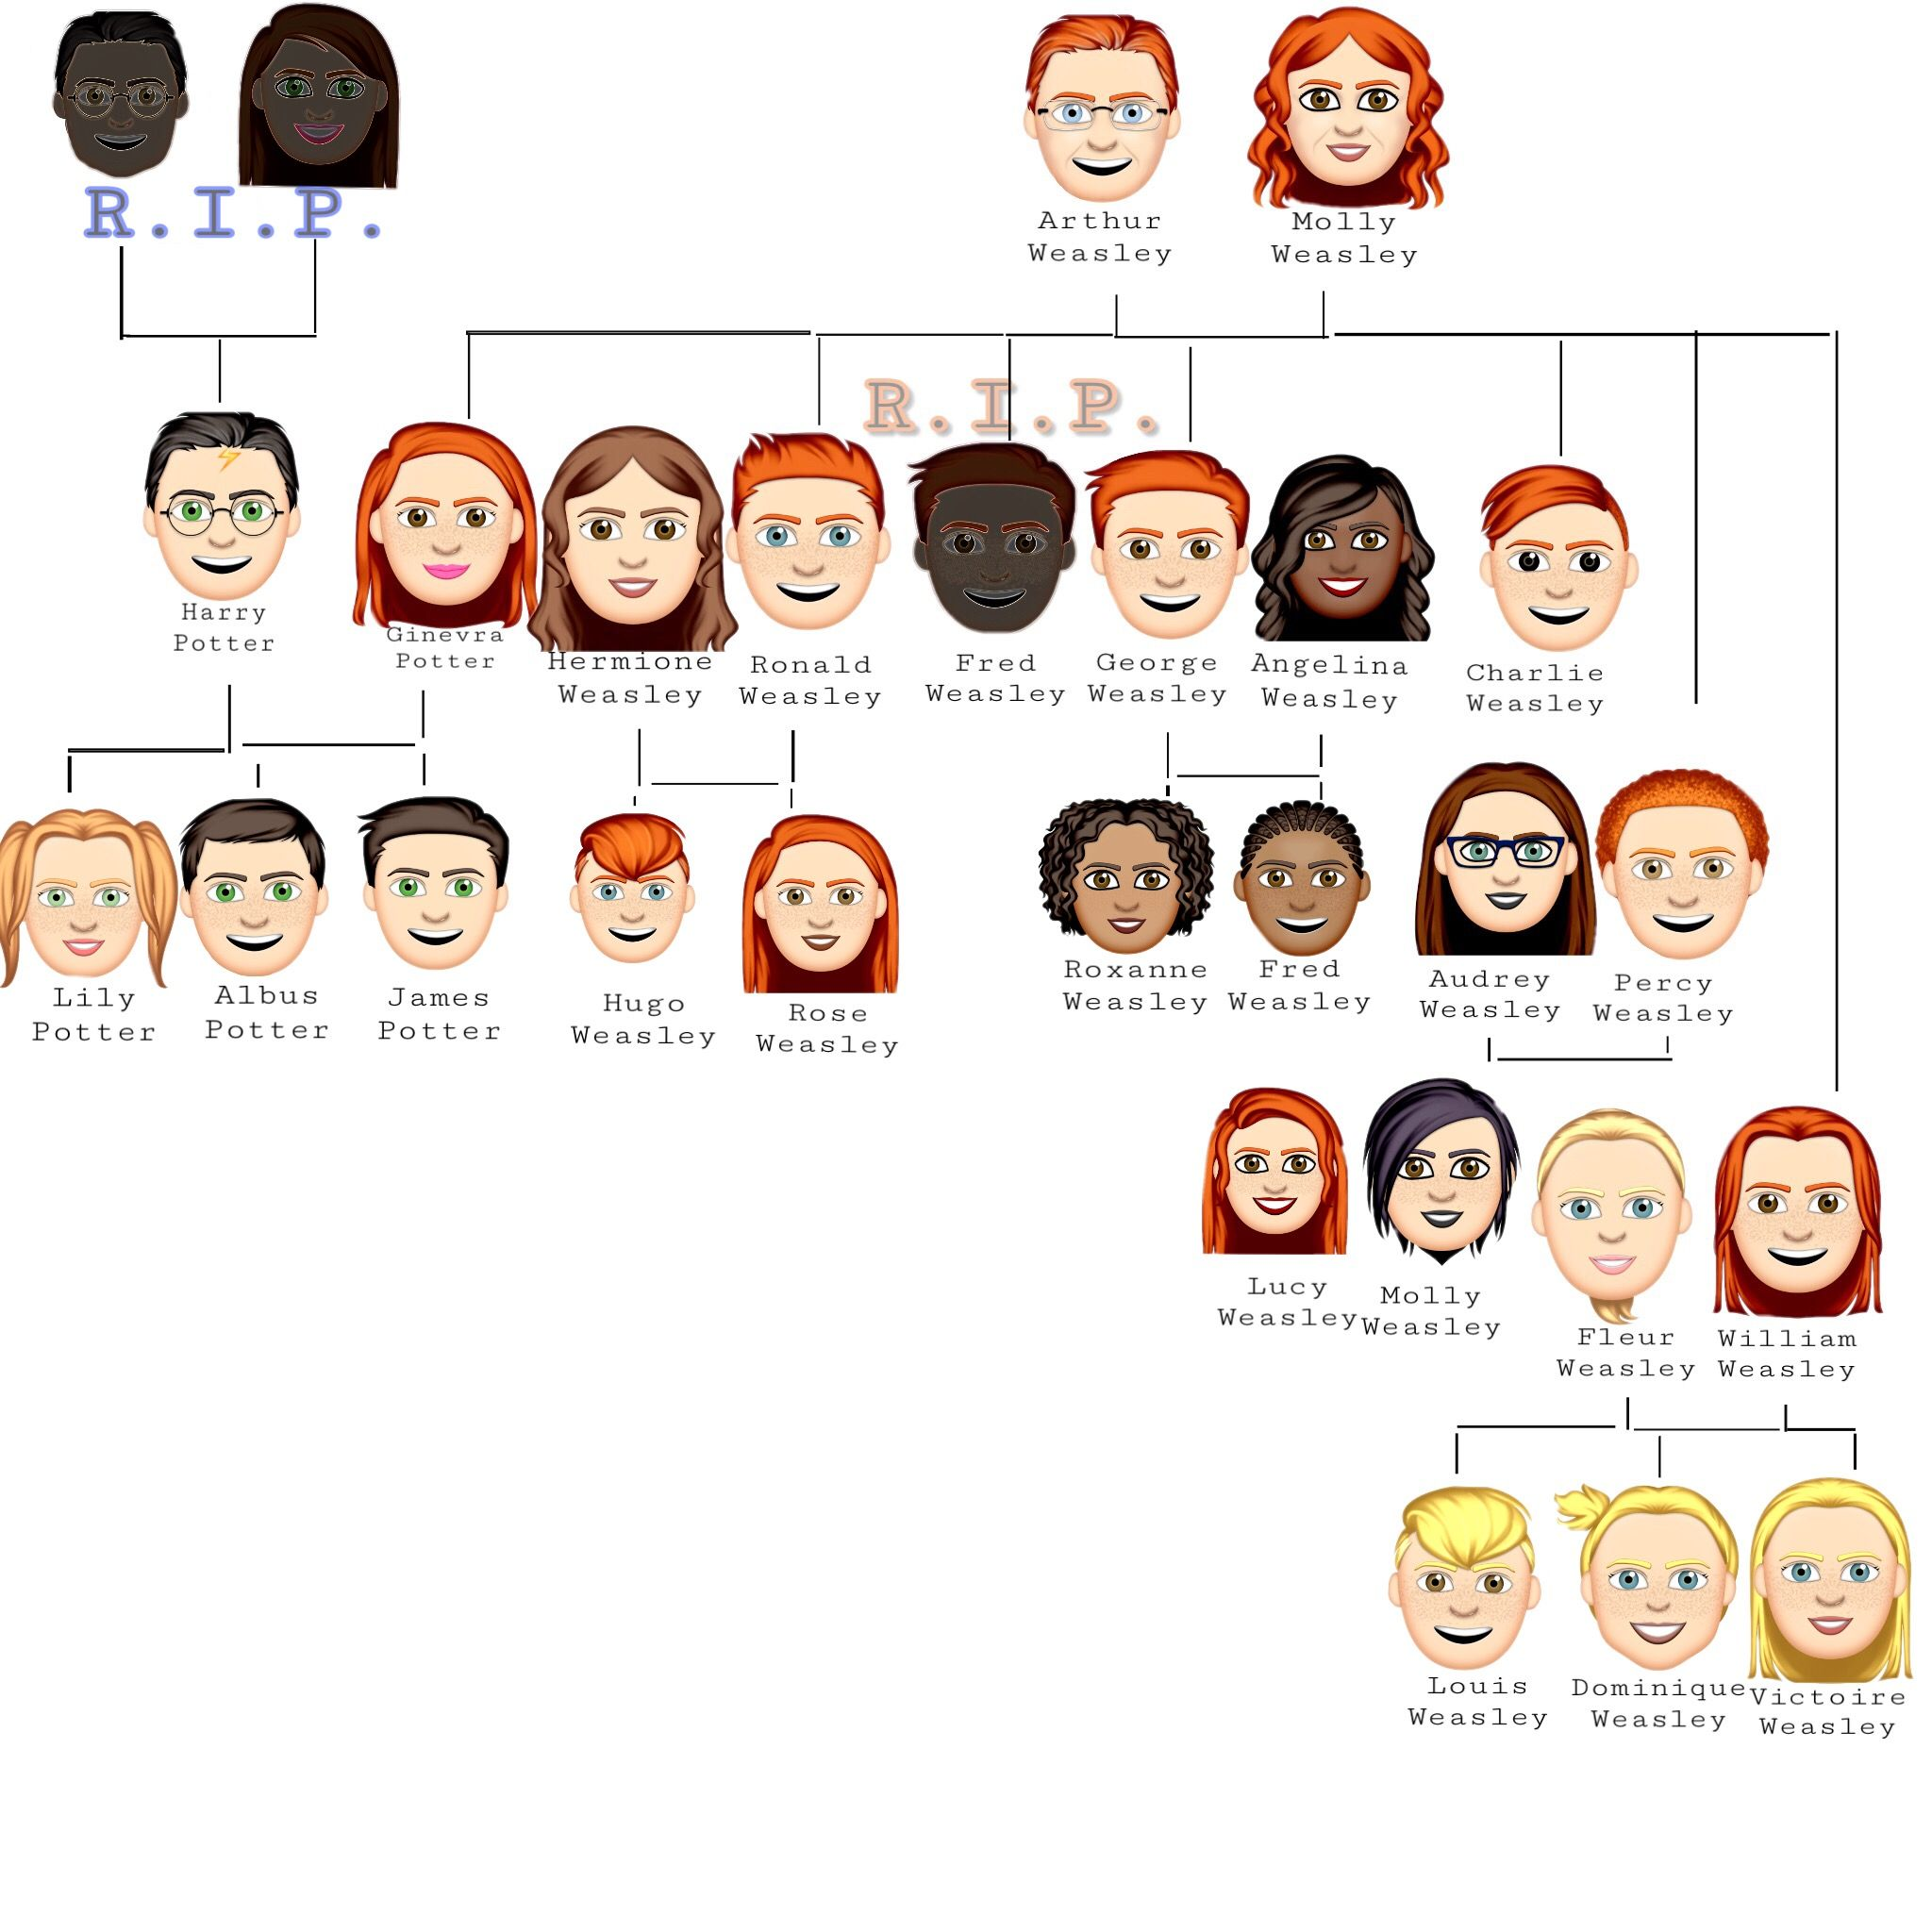 Harry Potter And The Weasley Extended Family Tree Harry Potter Hermione Cute Harry Potter Harry Potter Family Tree